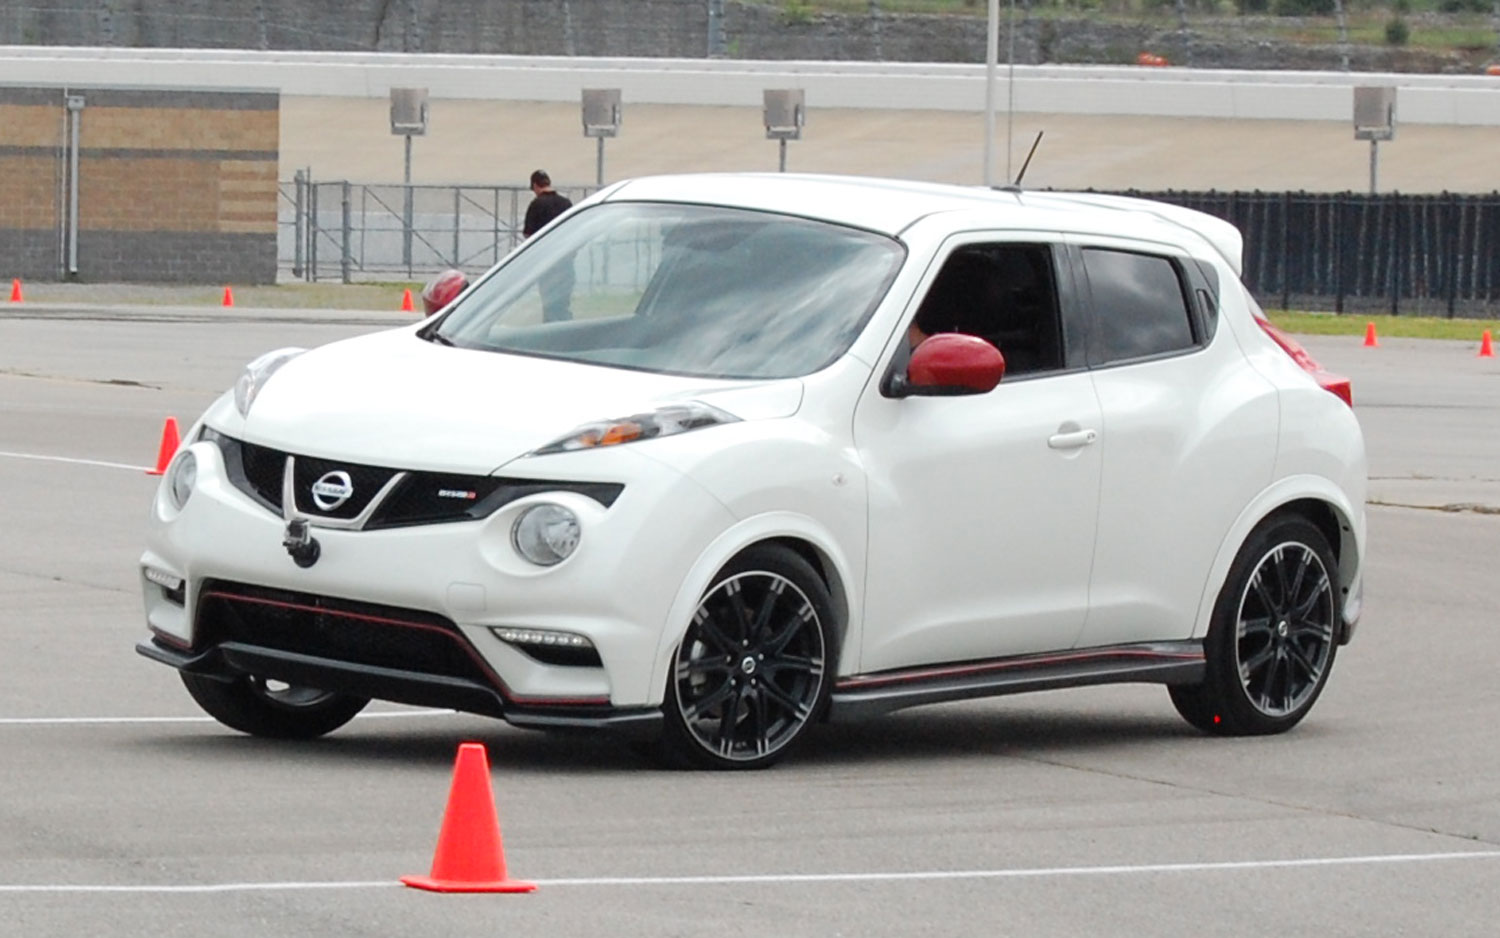 Nissan Juke Nismo RS  The Ultimate Enthusiast Compromise Car